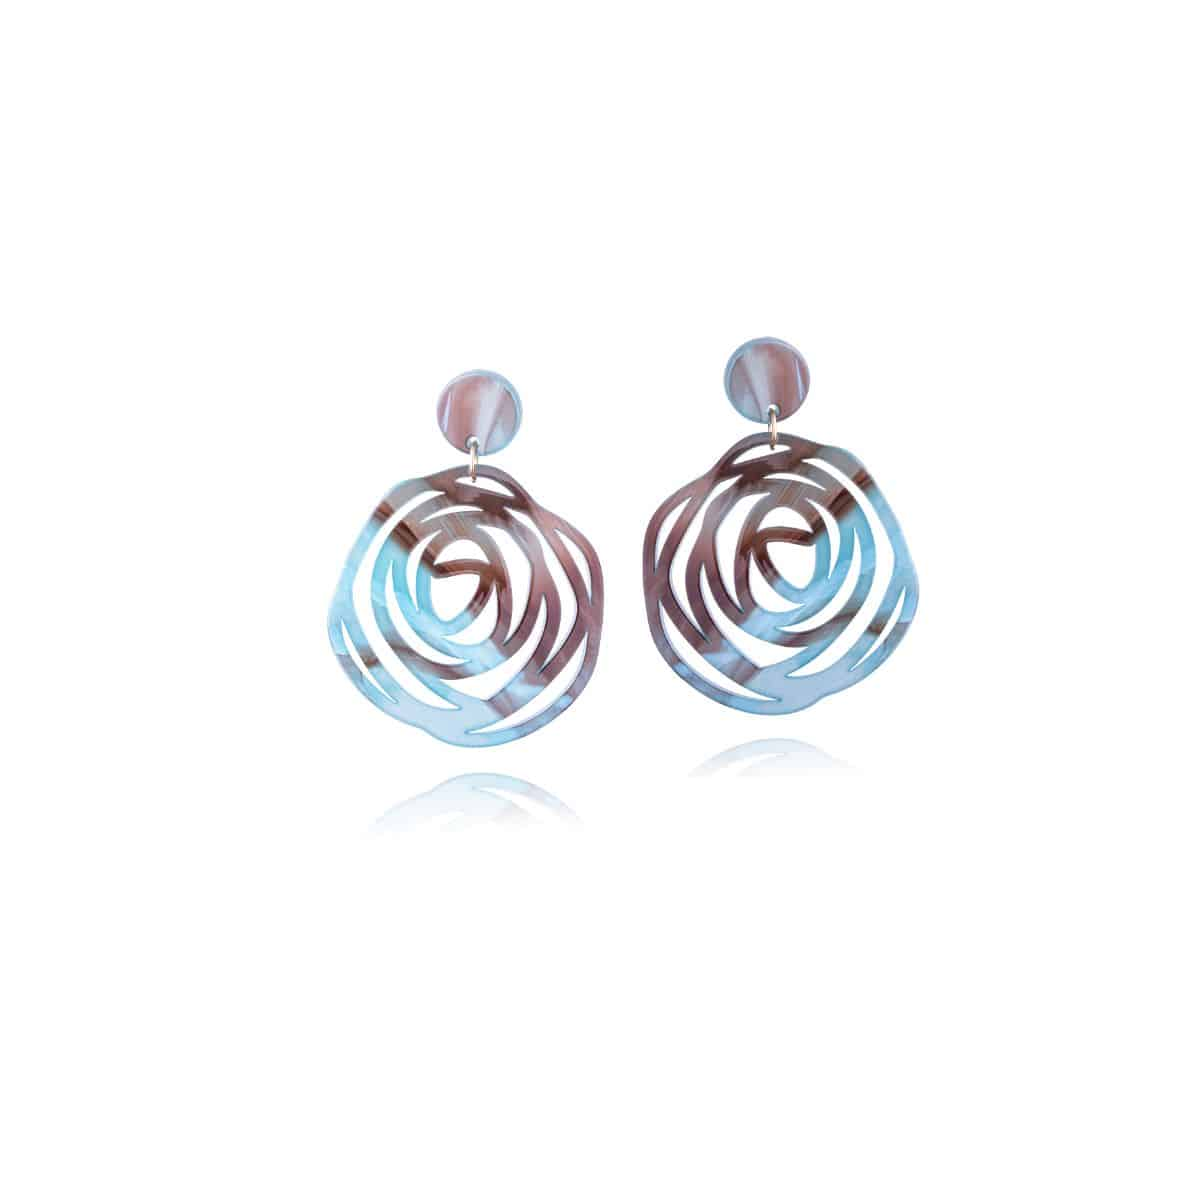 Twister earrings, made of brown-blue resin with an openwork circular shape.